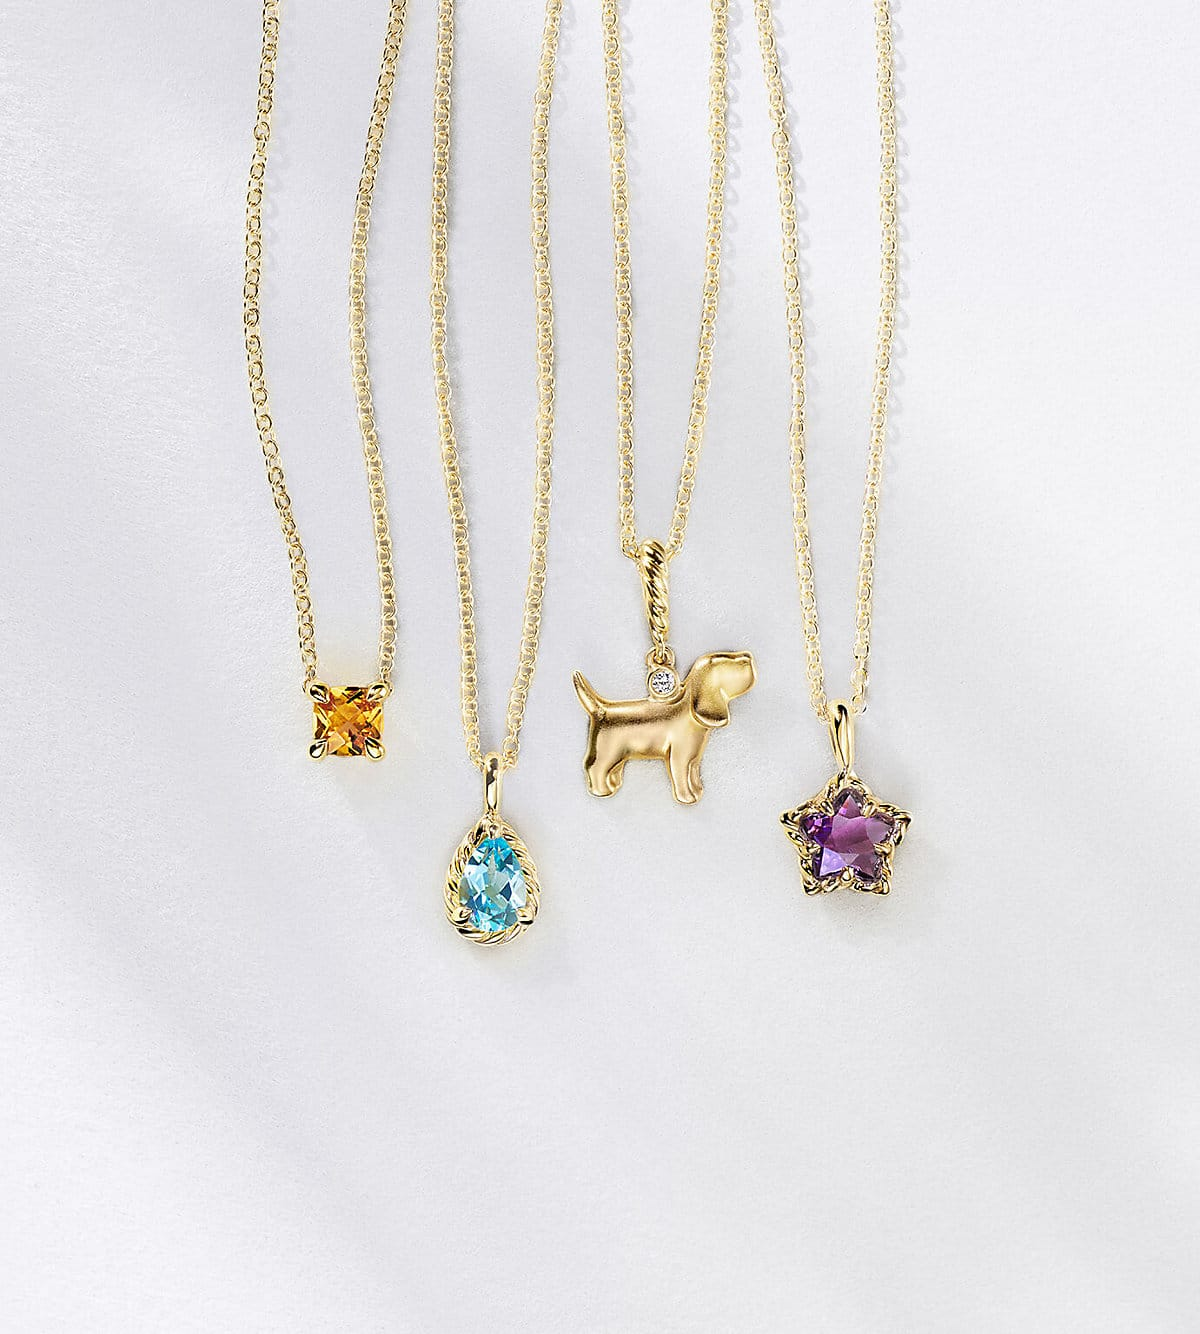 A color photograph shows four David Yurman kids' pendant necklaces hanging in a horizontal row in front of a white background with diagonal shadows. The kids' jewelry is crafted from 18K yellow with or without a cushion-cut citrine, teardrop-shaped blue topaz, dog charm with a white diamond and star-shaped amethyst.